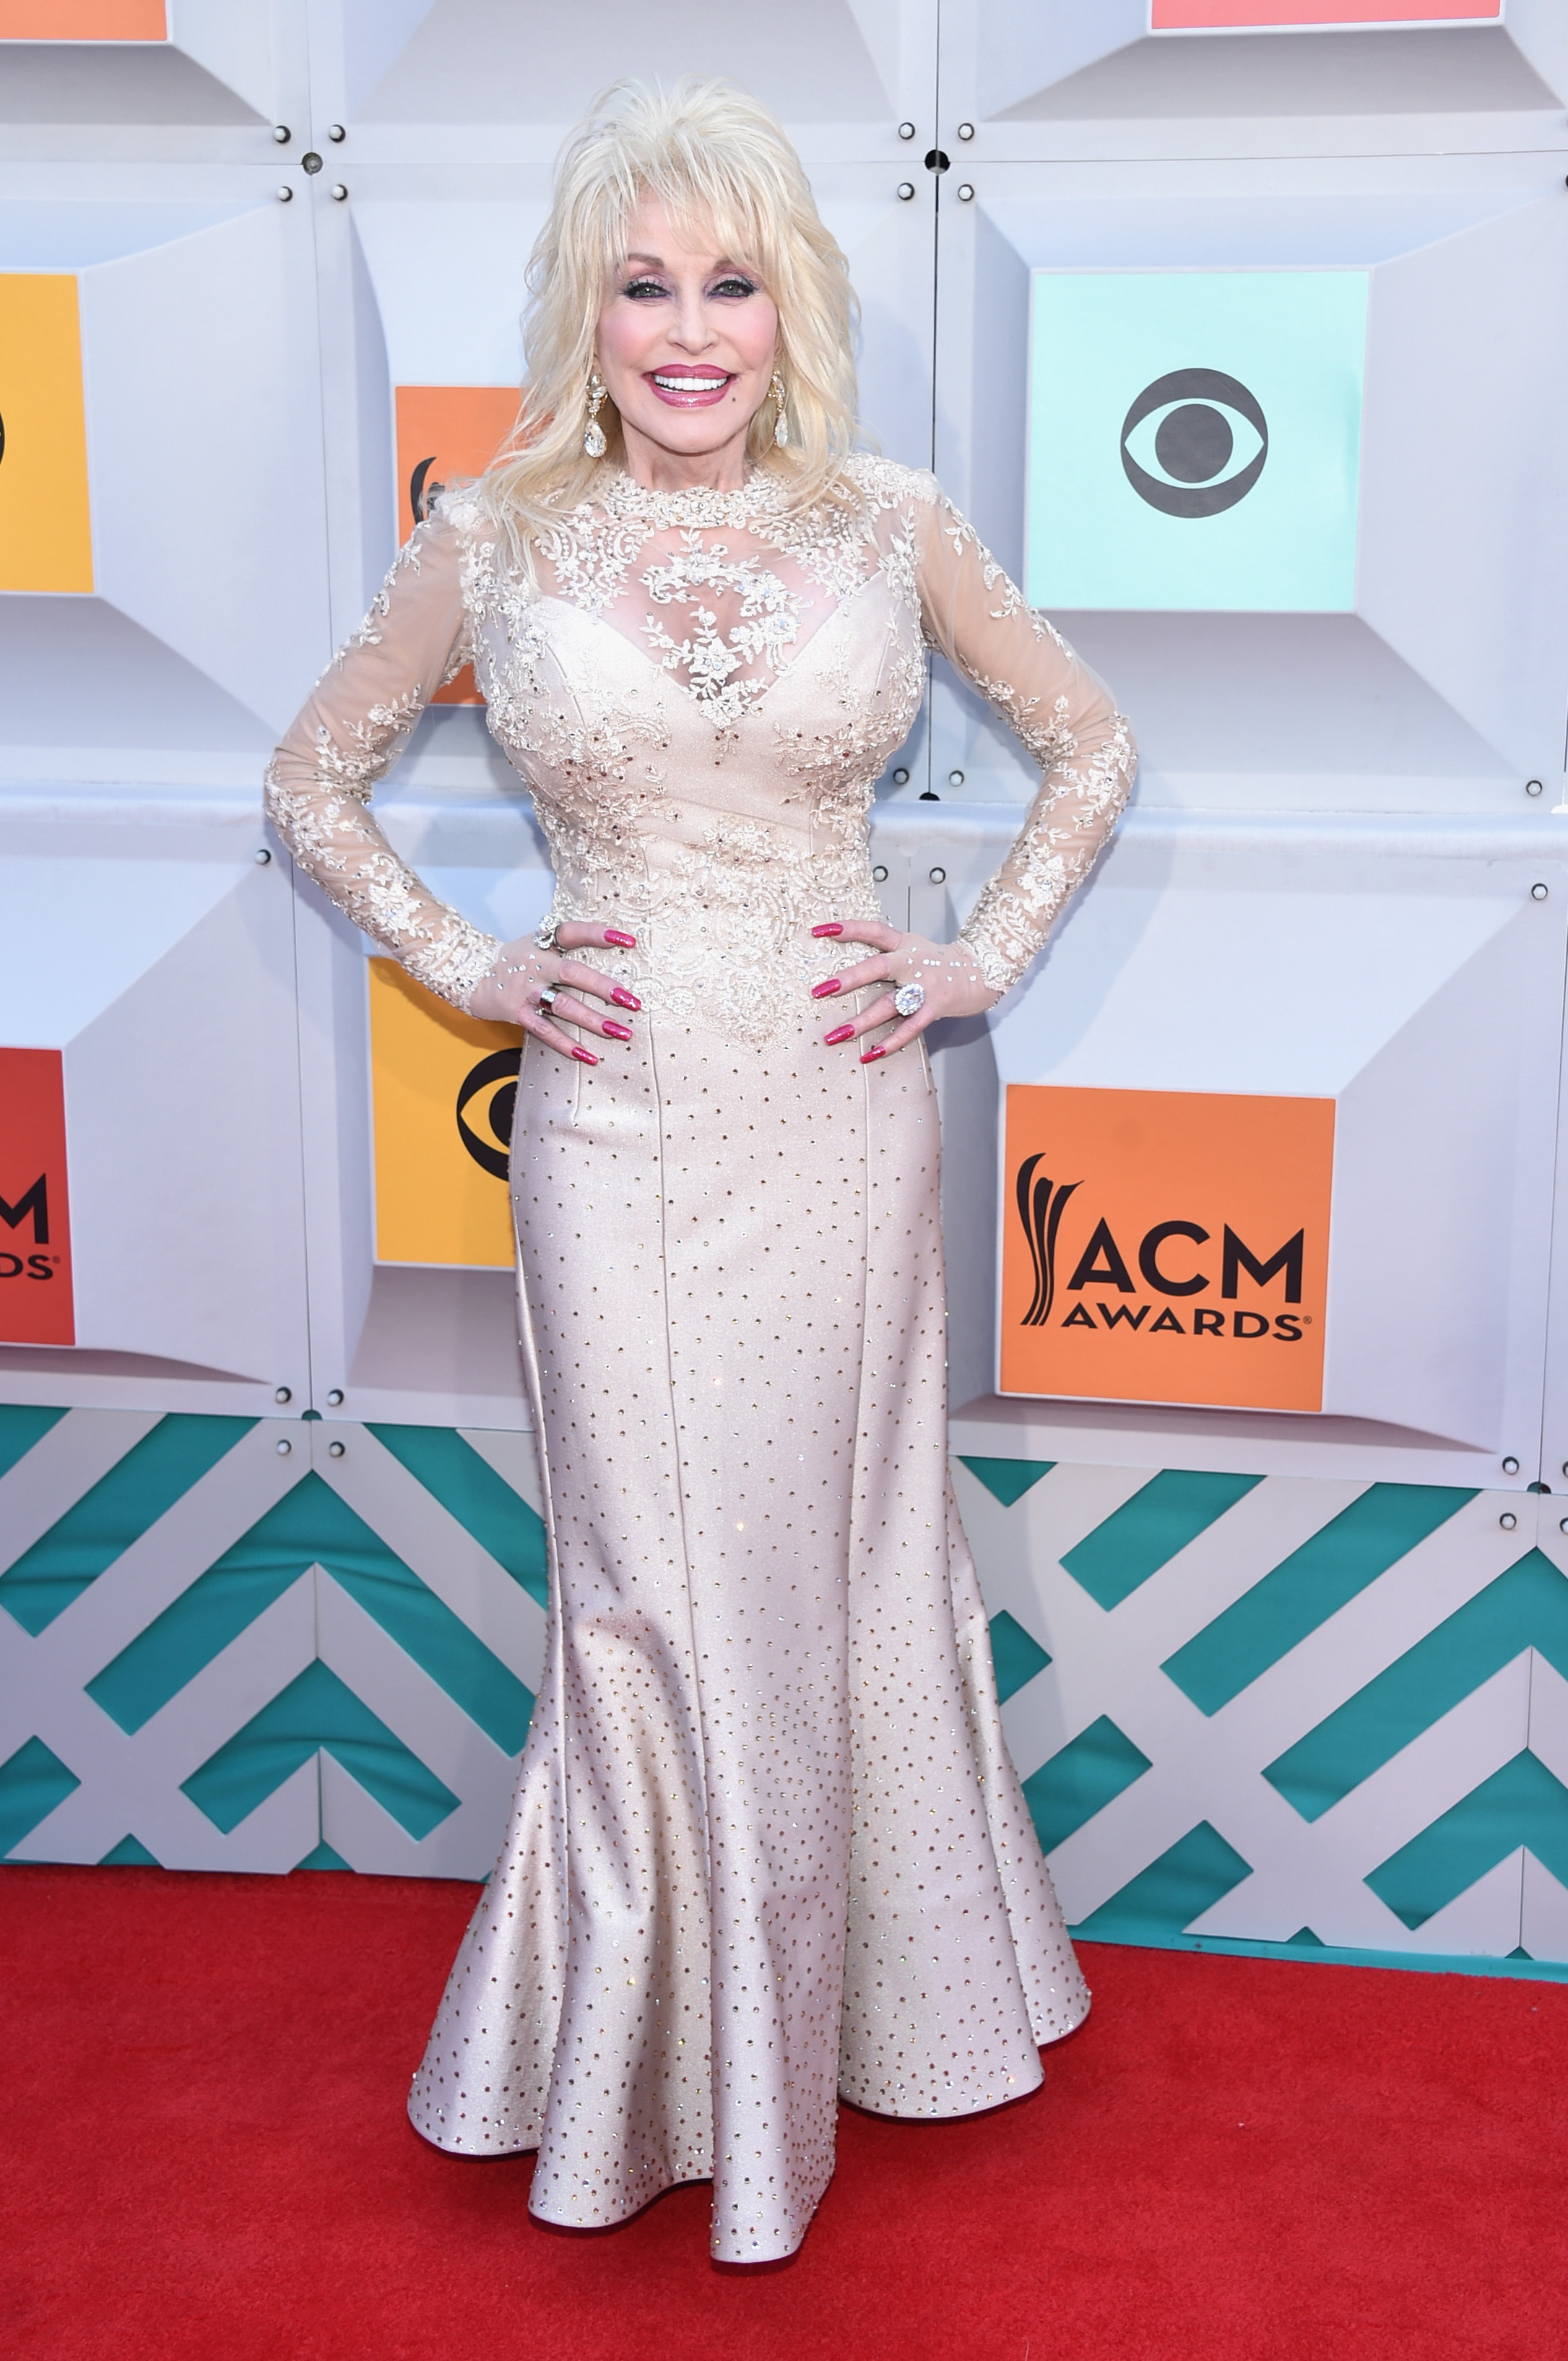 The Best Celebrity Style at the 2016 ACM Awards  2016